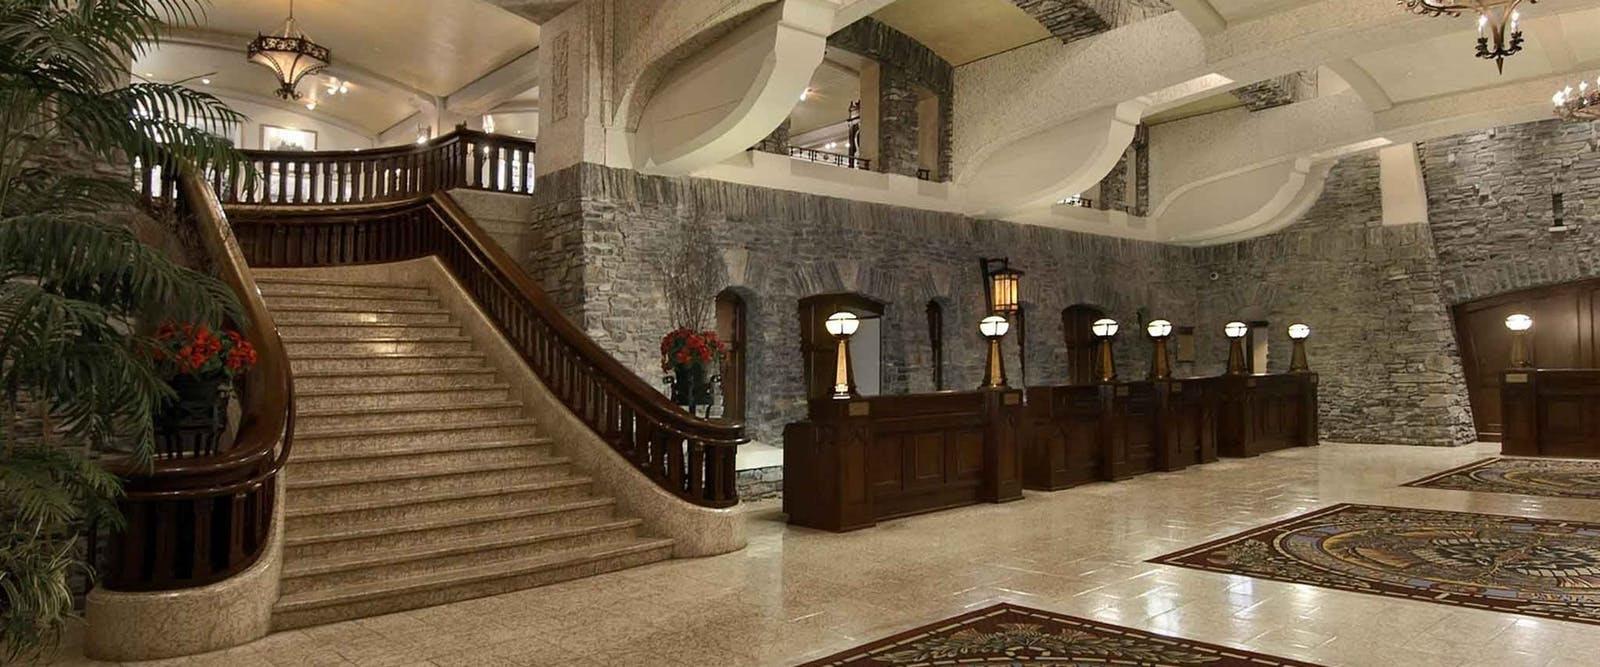 Lobby at Fairmont Banff Springs, Alberta